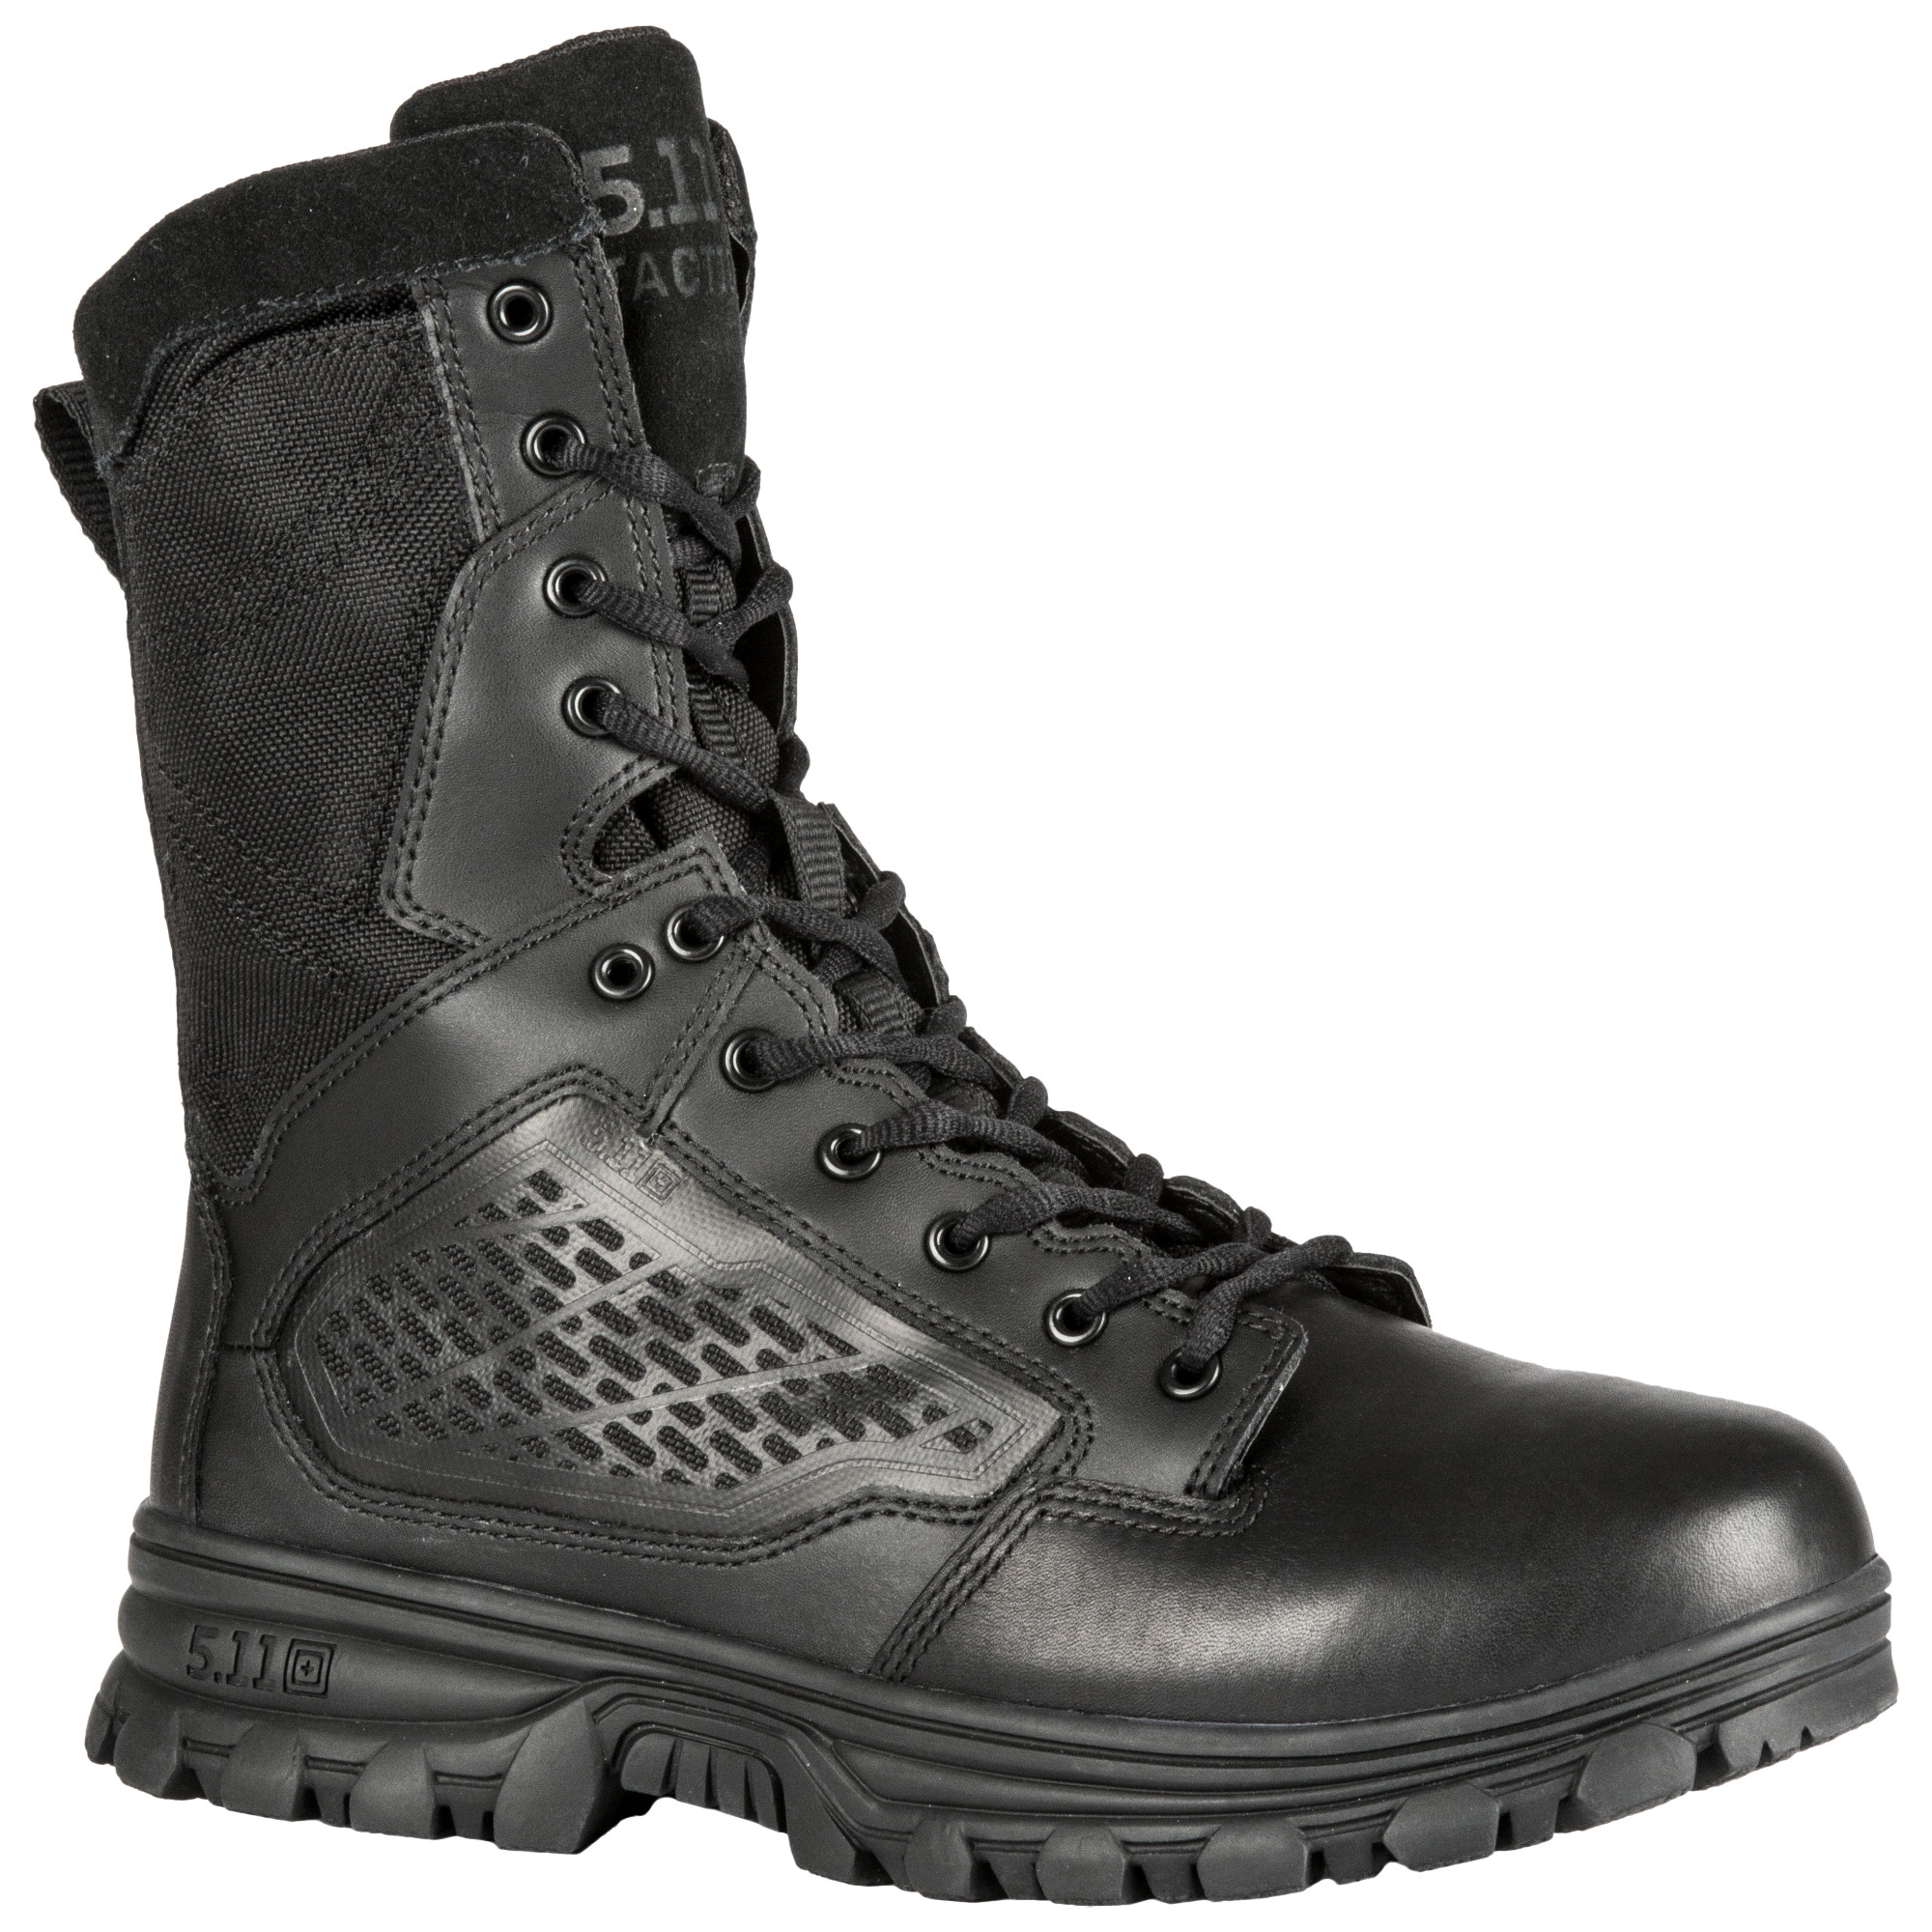 "5.11 Evo 8"" Side Zip Tactical Boot 12310"